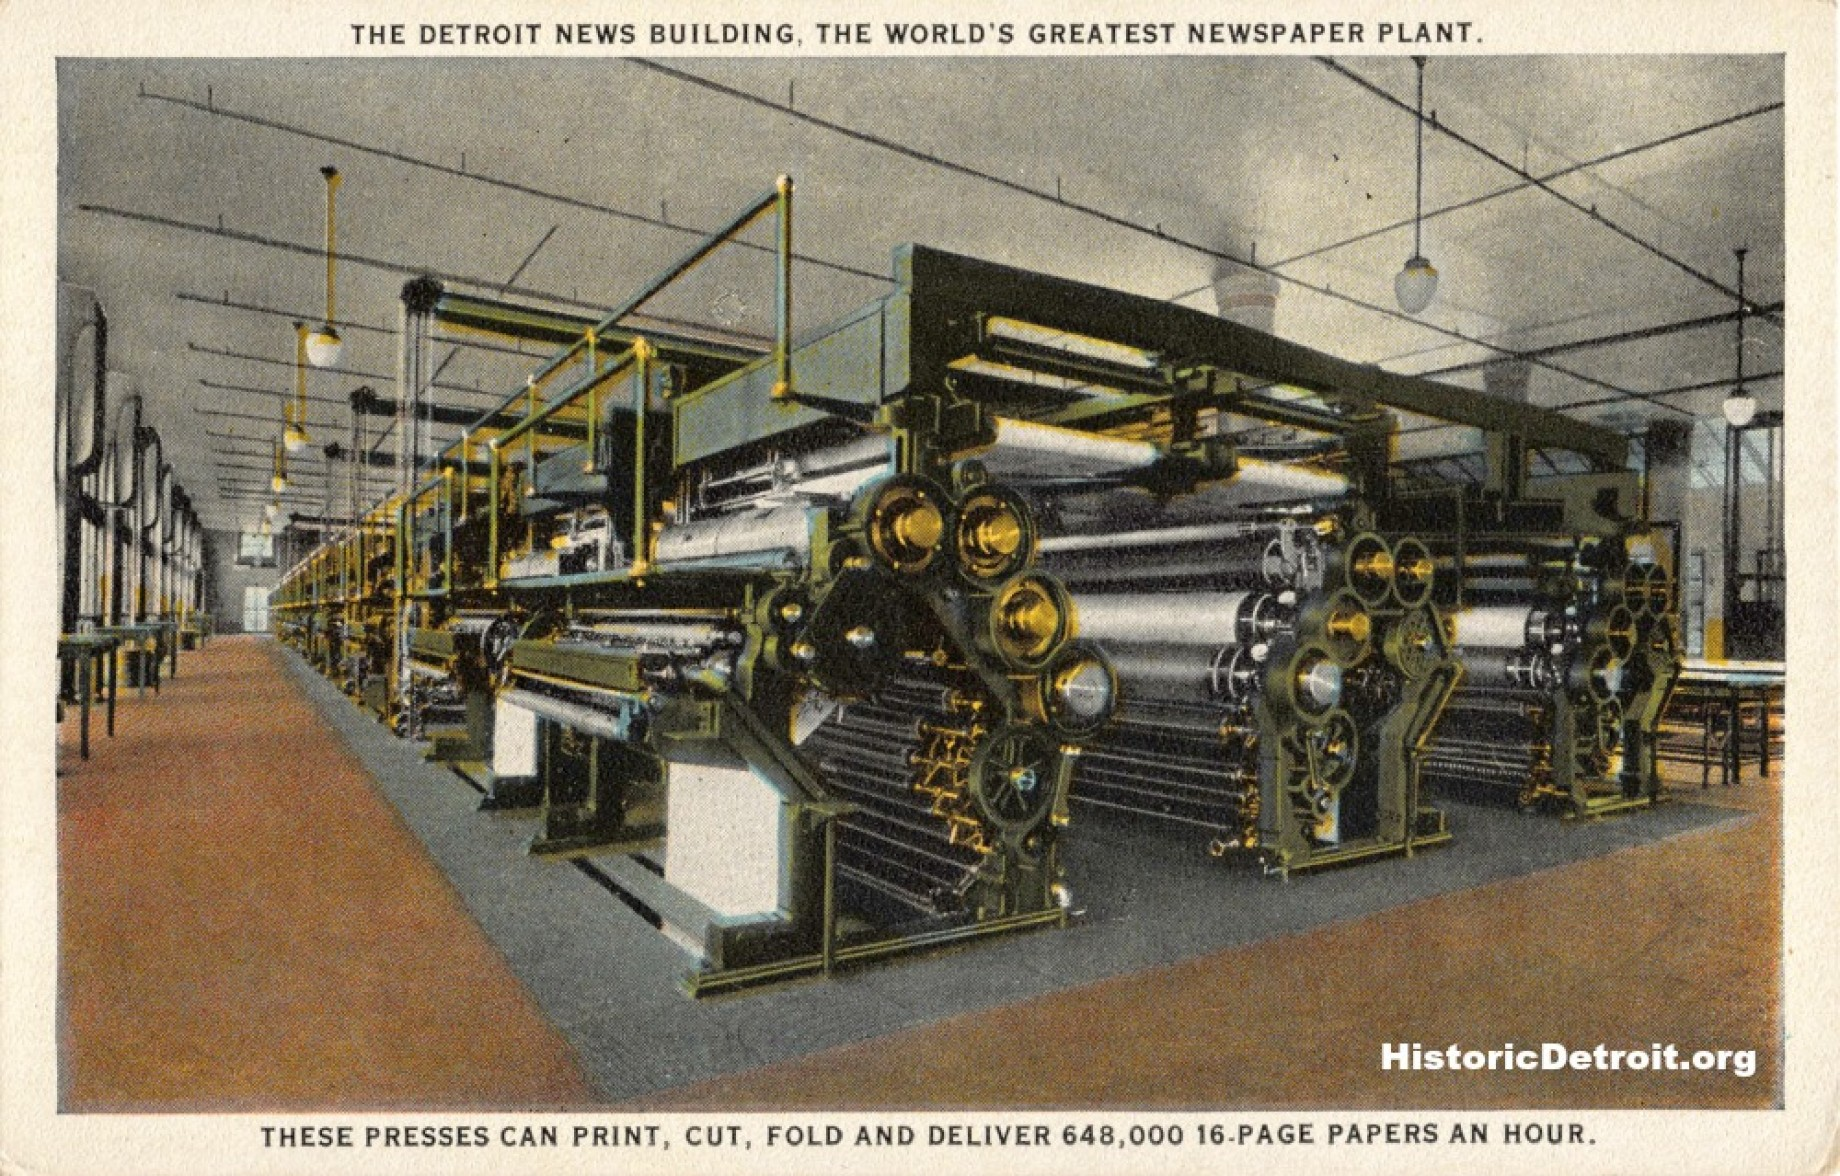 Detroit News presses depicted in a postcard  (image from Historic Detroit)